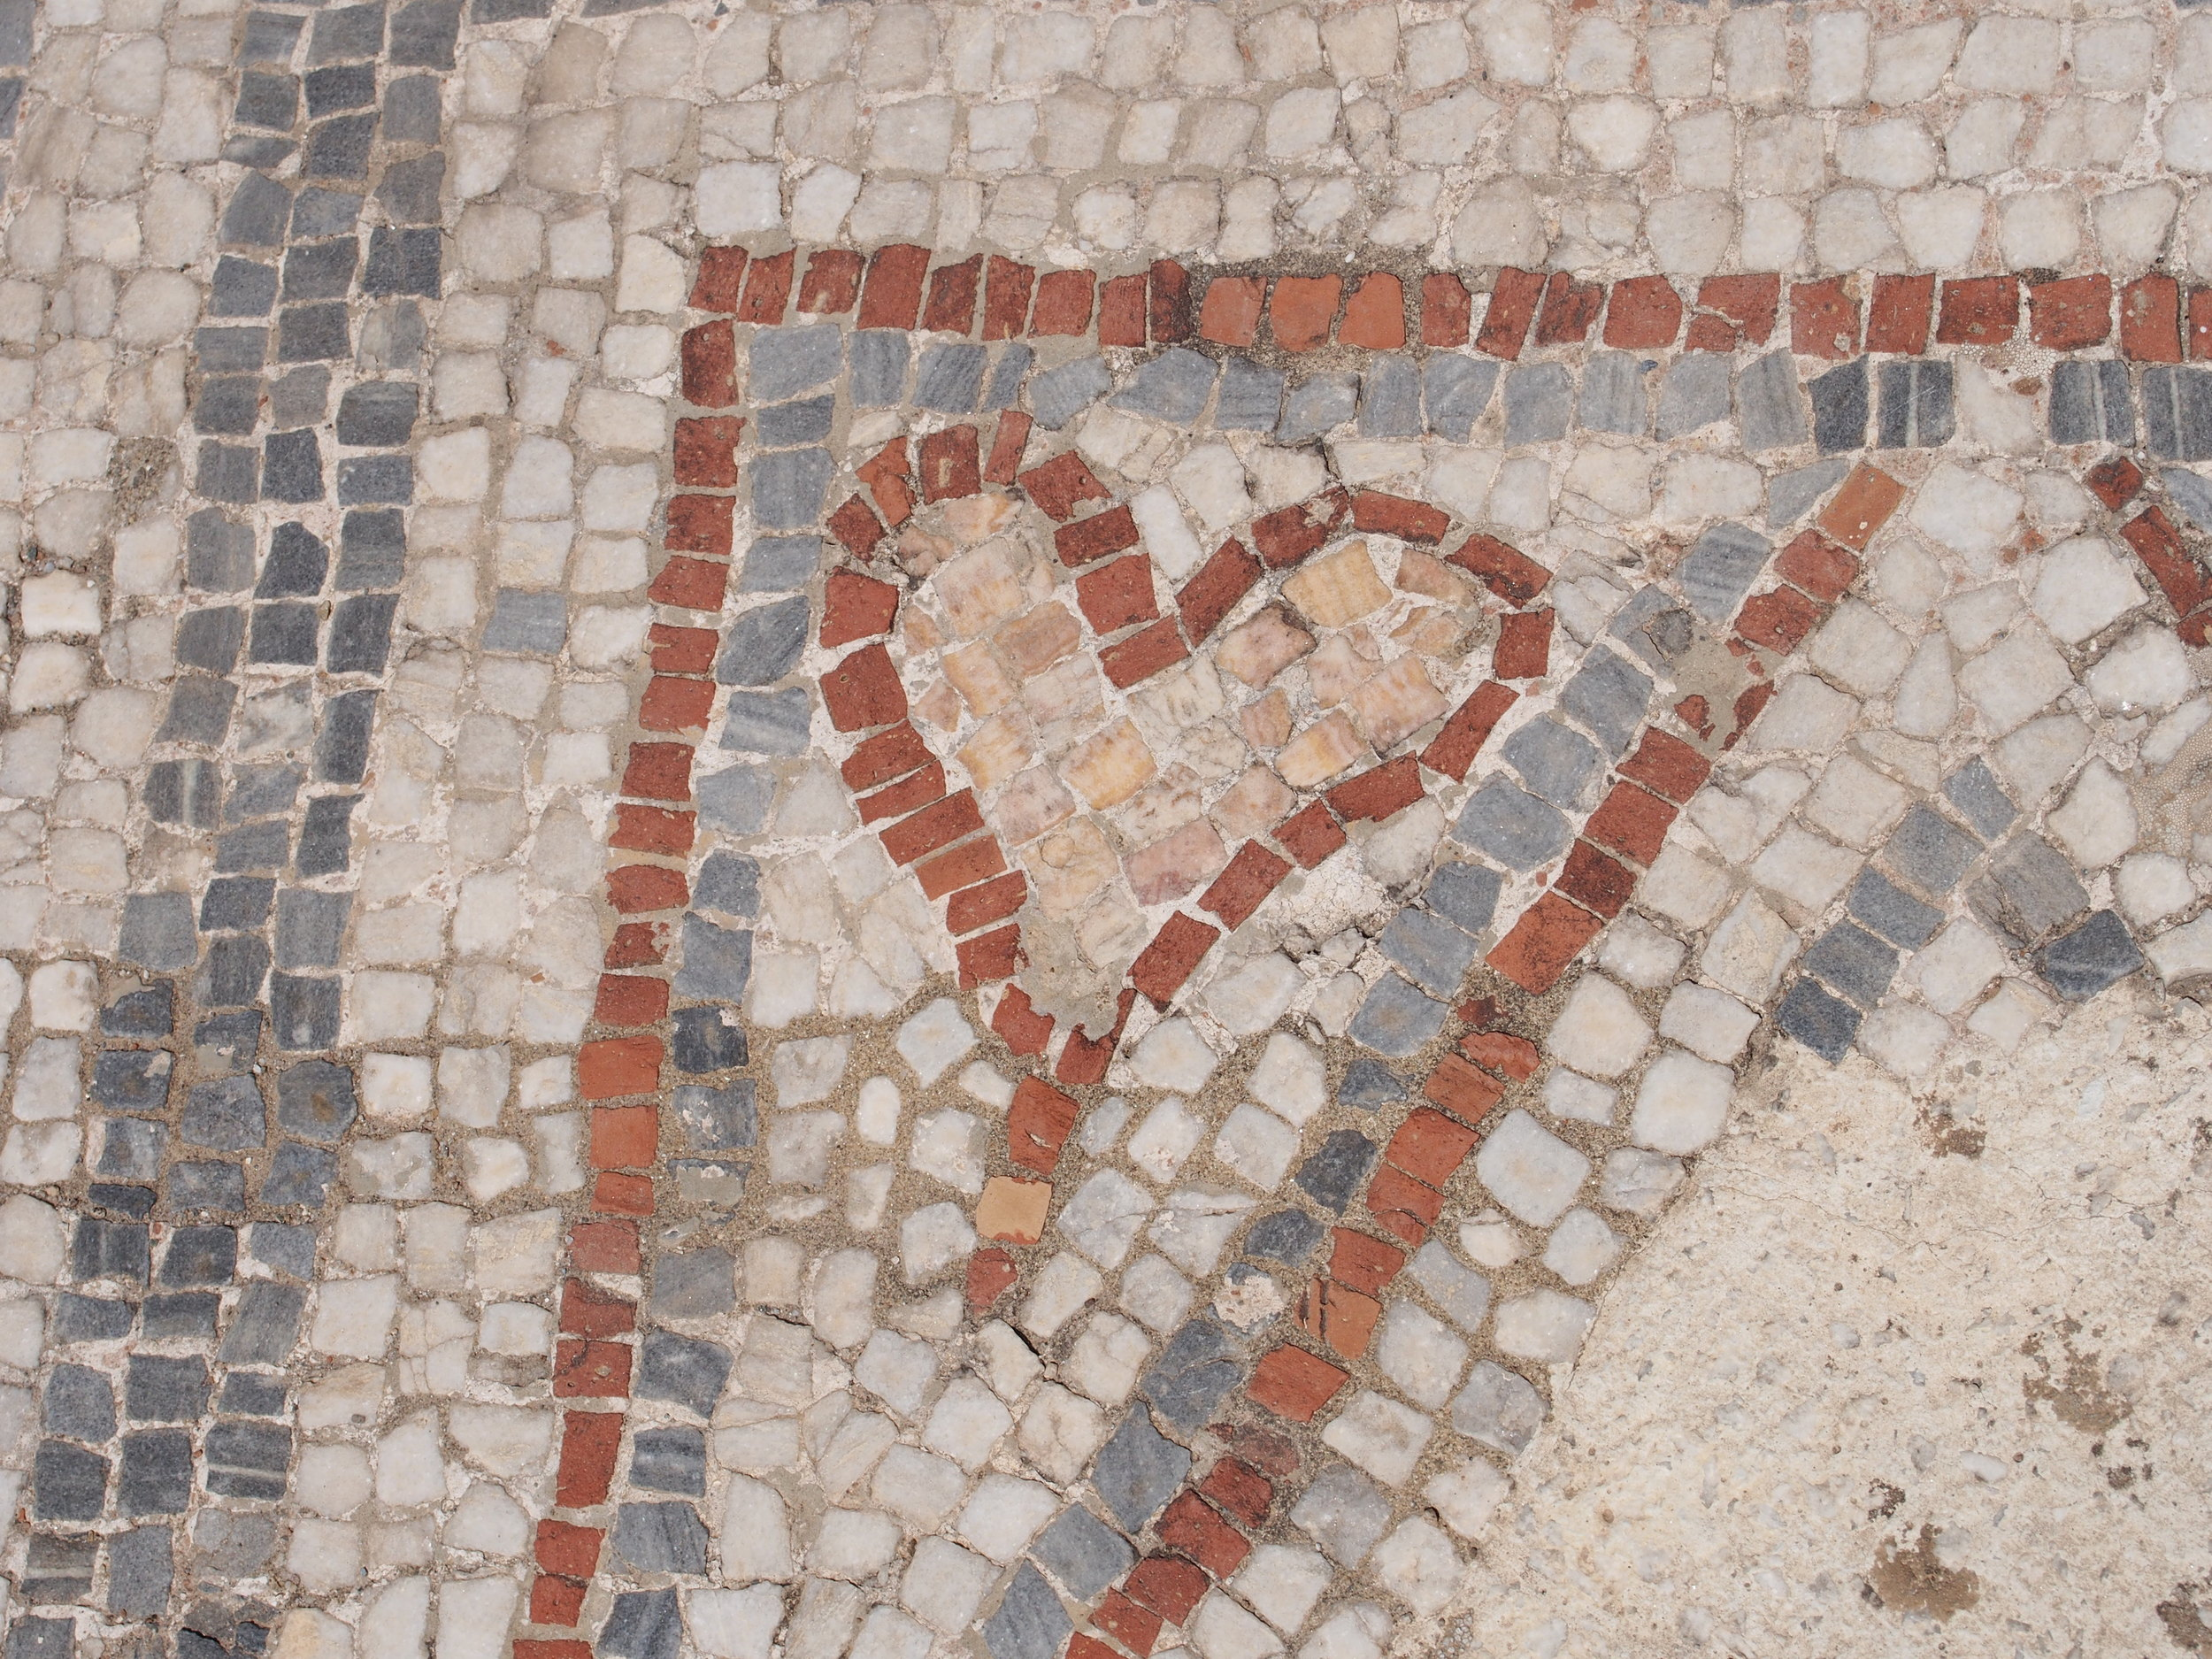 Mosaic uncovered in Ancient Ephesus